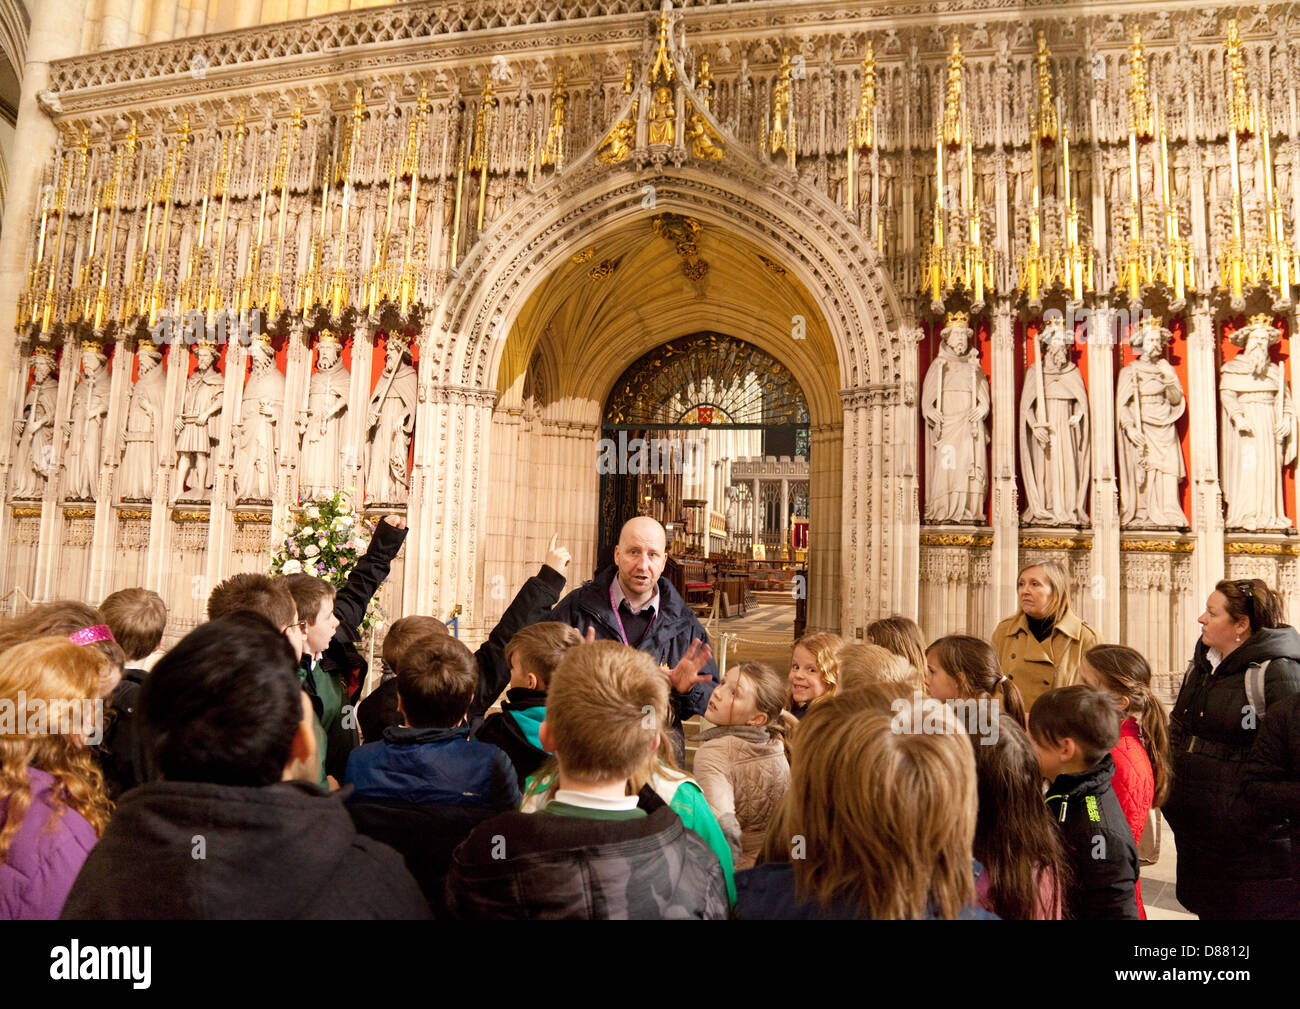 Children and their teacher on school trip guided tour of York Minster cathedral, York, Yorkshire UK - Stock Image